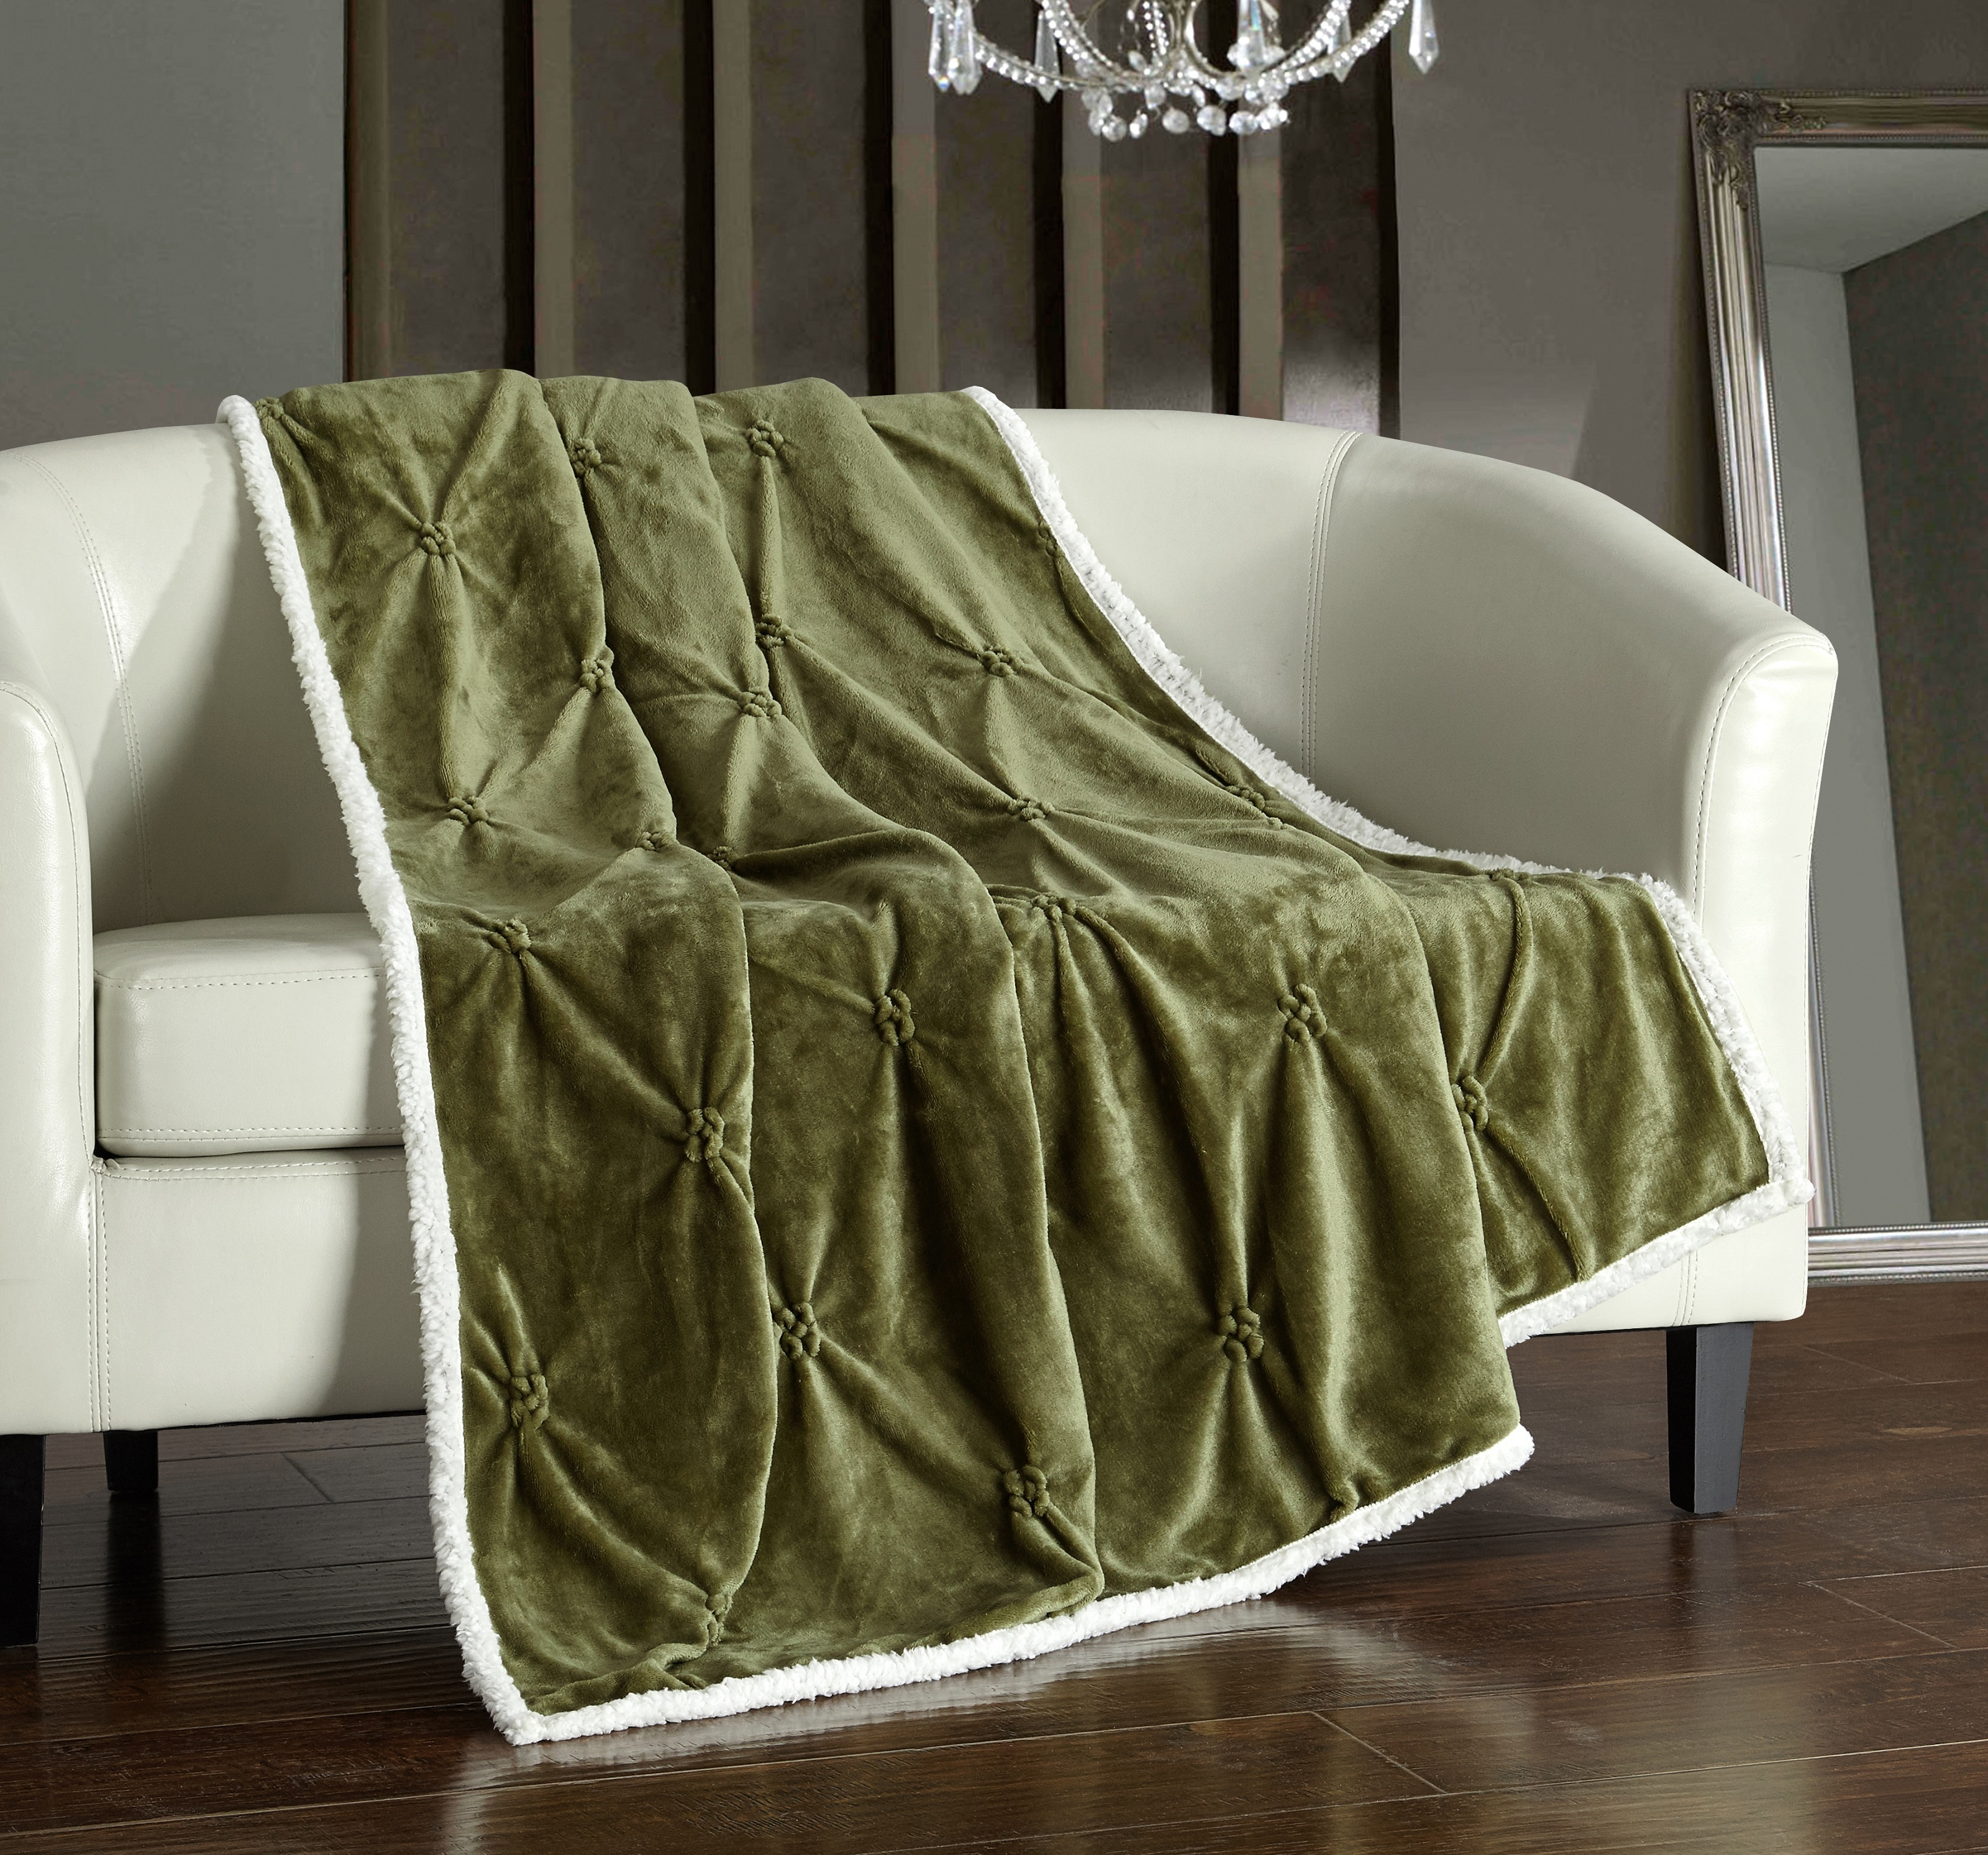 """Chic Home 1 -piece Barbuda Pinch Pleated Sherpa Lined 50x60"""" Throw Blanket Sherpa Blanket Green"""